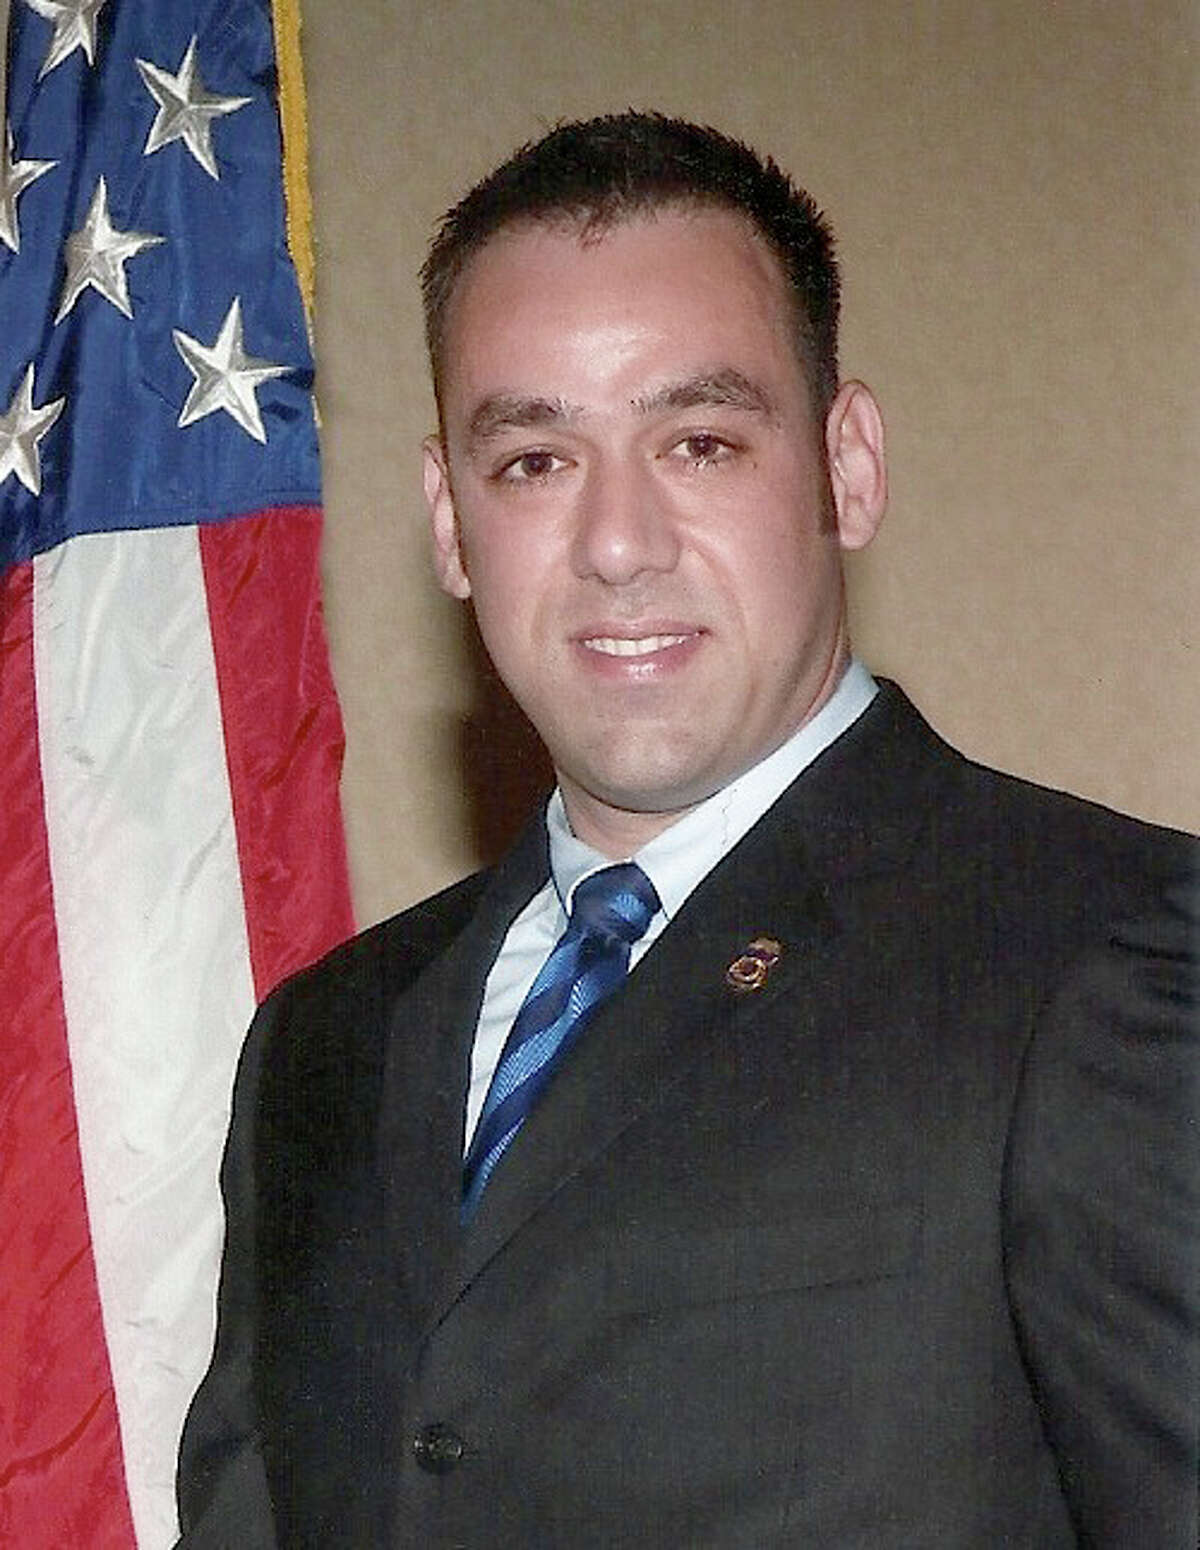 U.S. Immigration and Customs Enforcement Special Agent Jaime Zapata was gunned down Feb. 15 when he was ambushed while traveling between Mexico City and Monterrey.